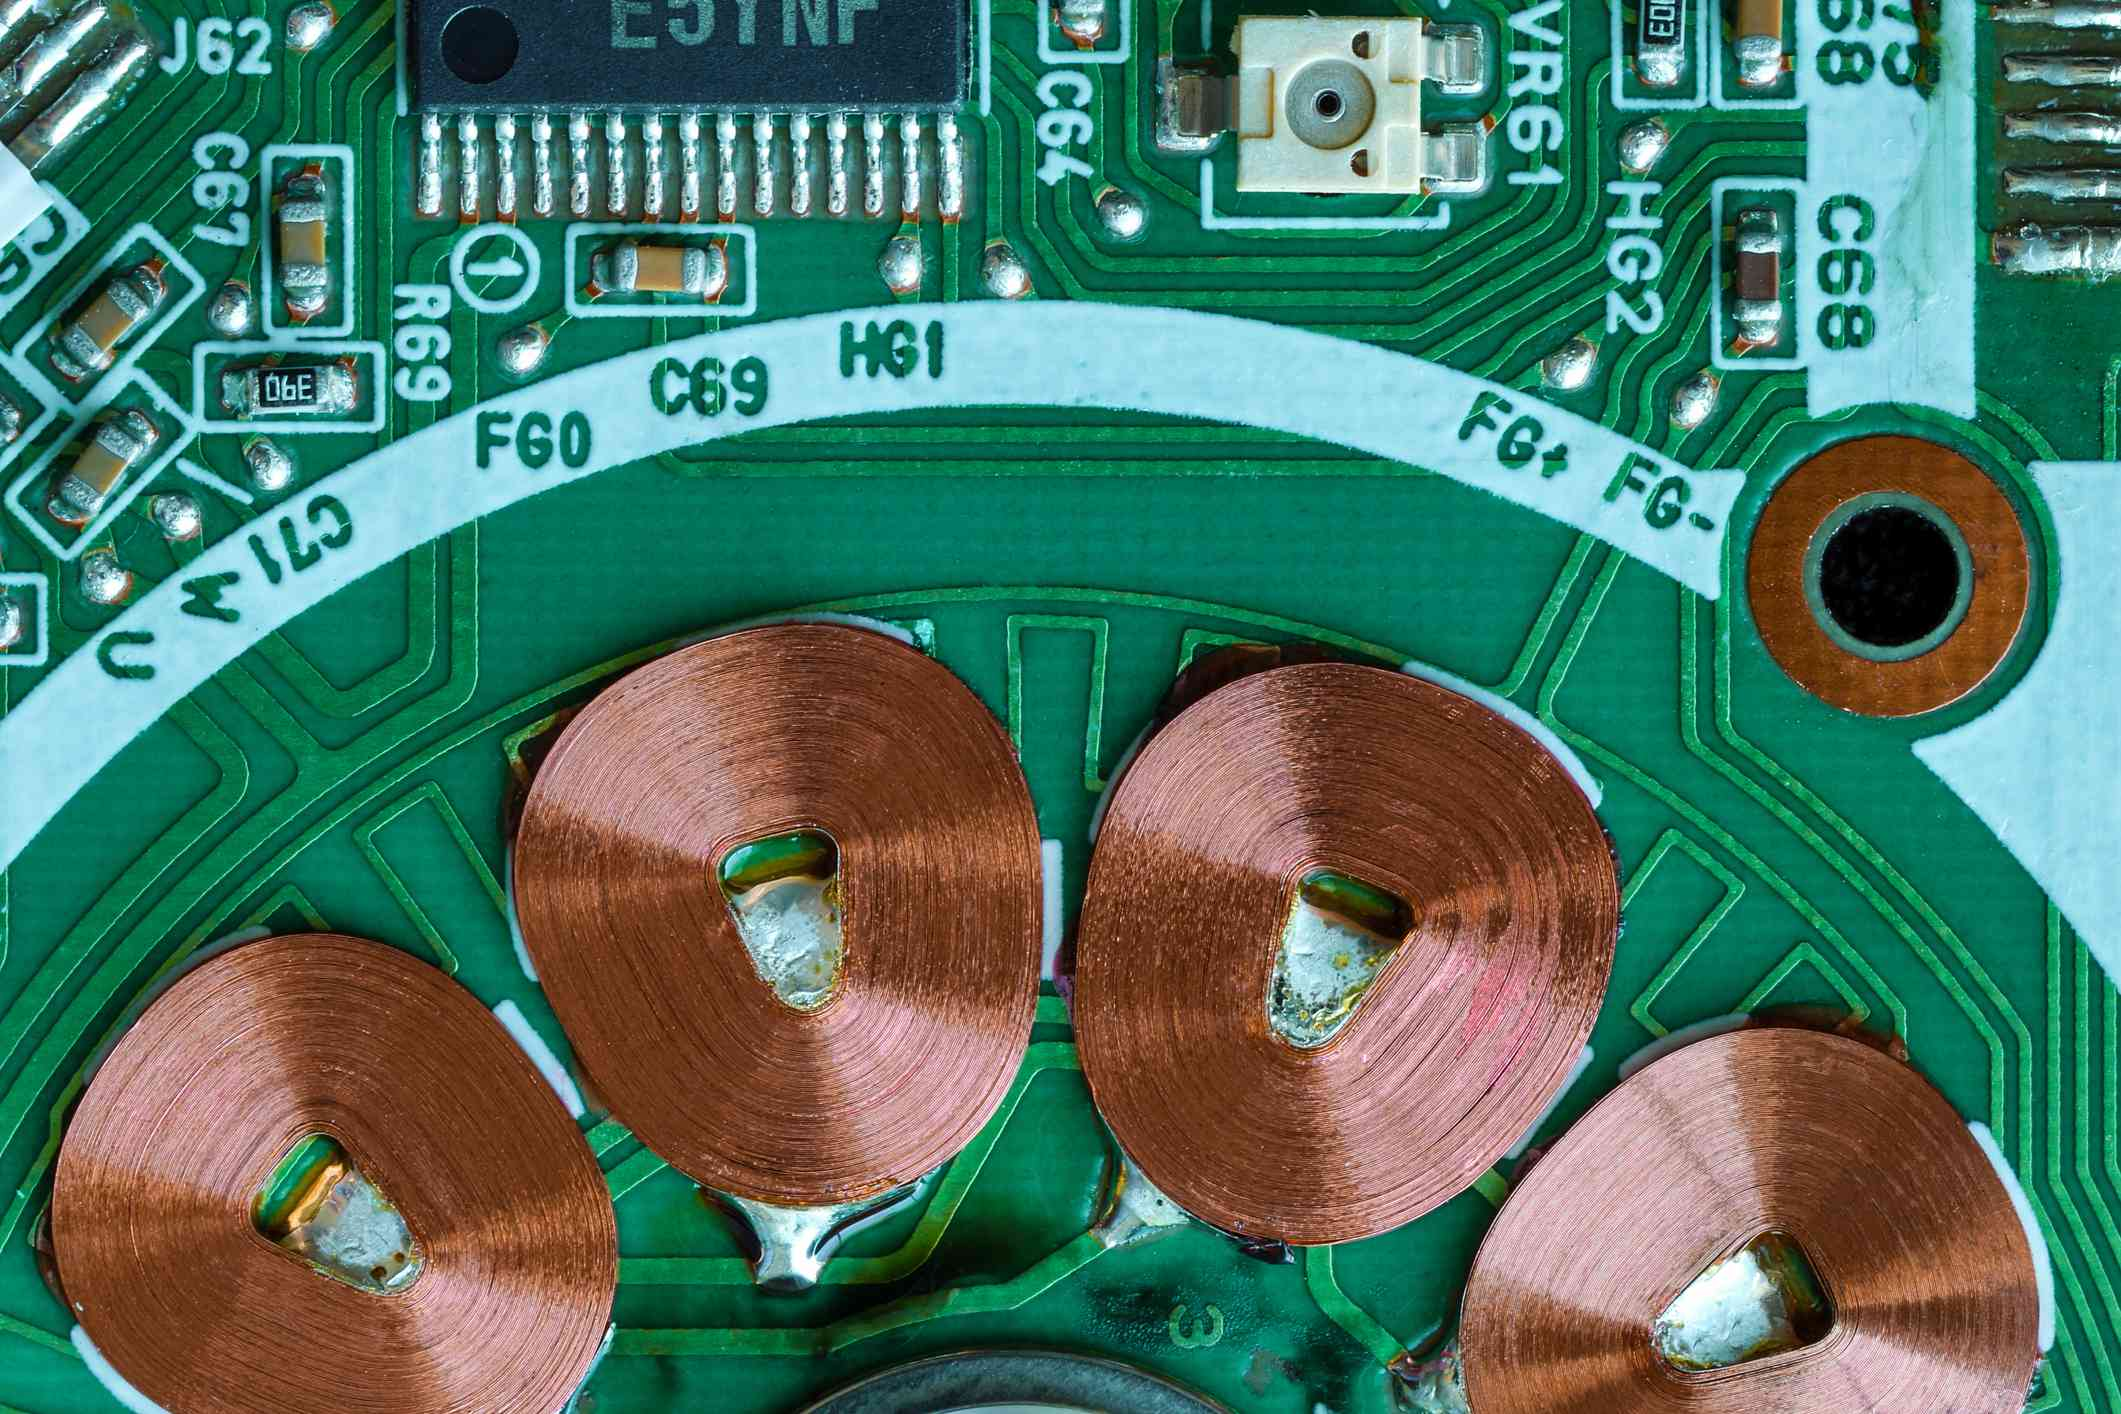 Shot from above a circuit board showing copper coils